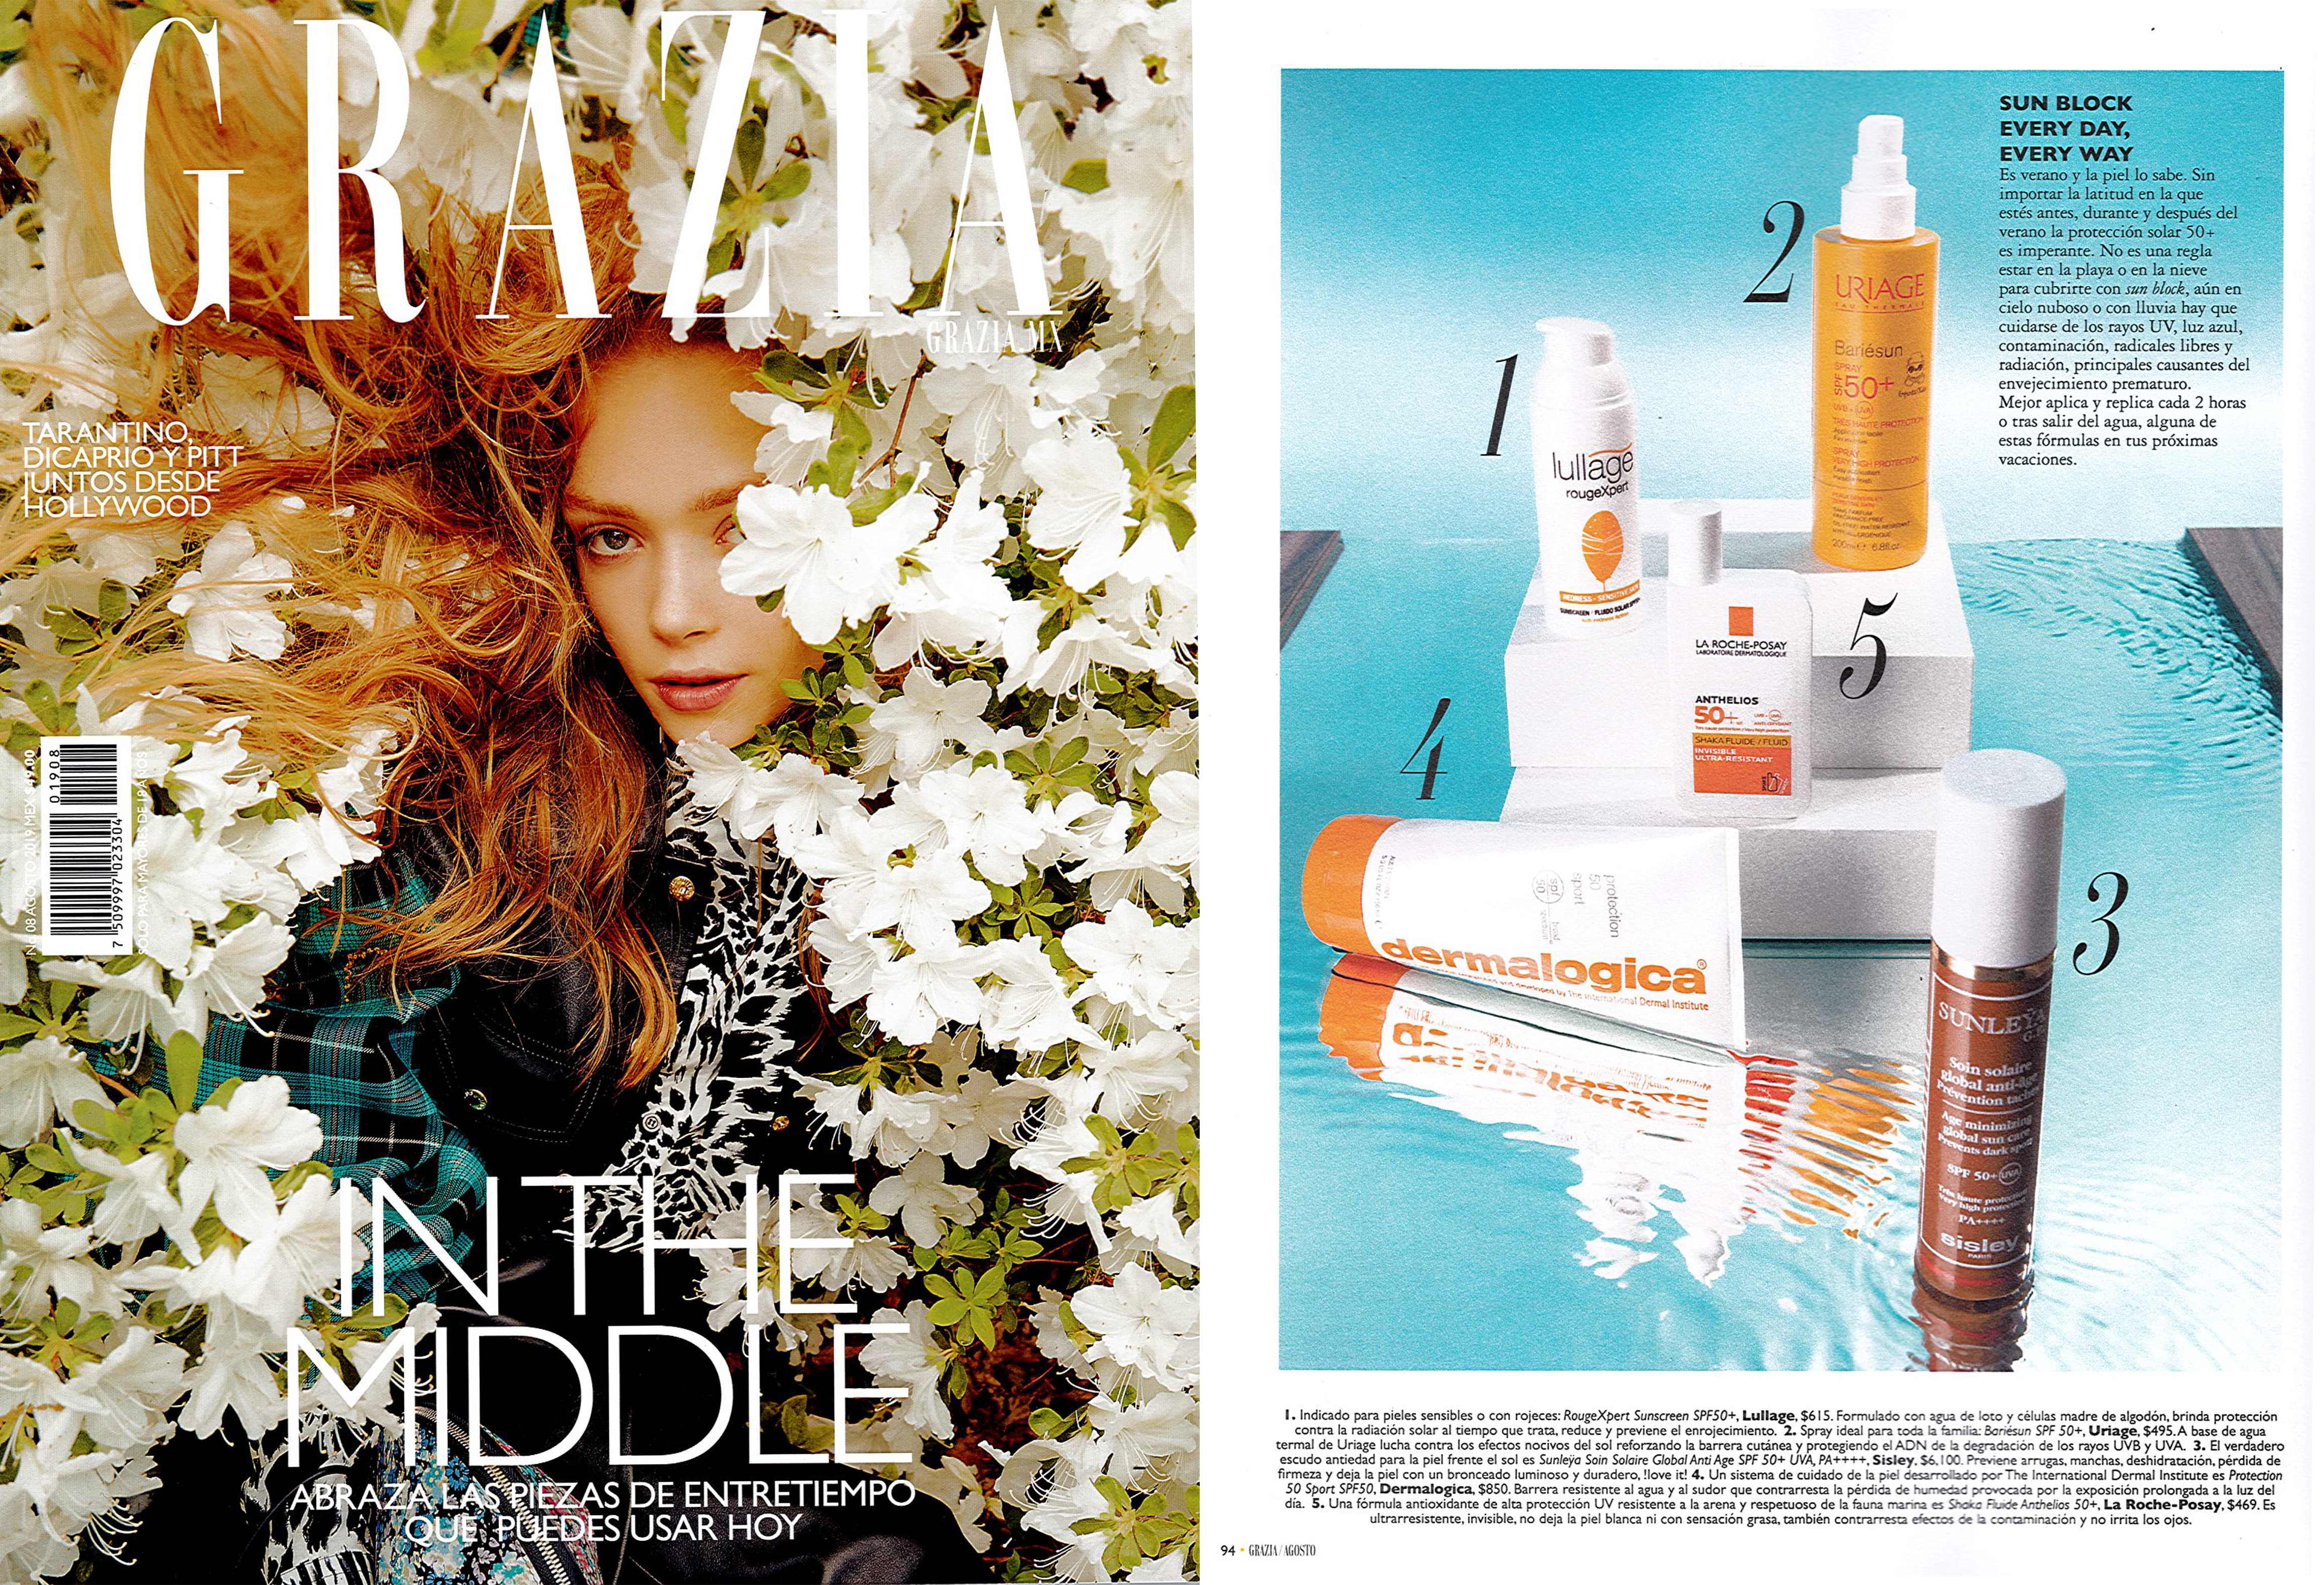 Grazia Mexico recommends Lullage rougeXpert to protect your sensitive skin this summer